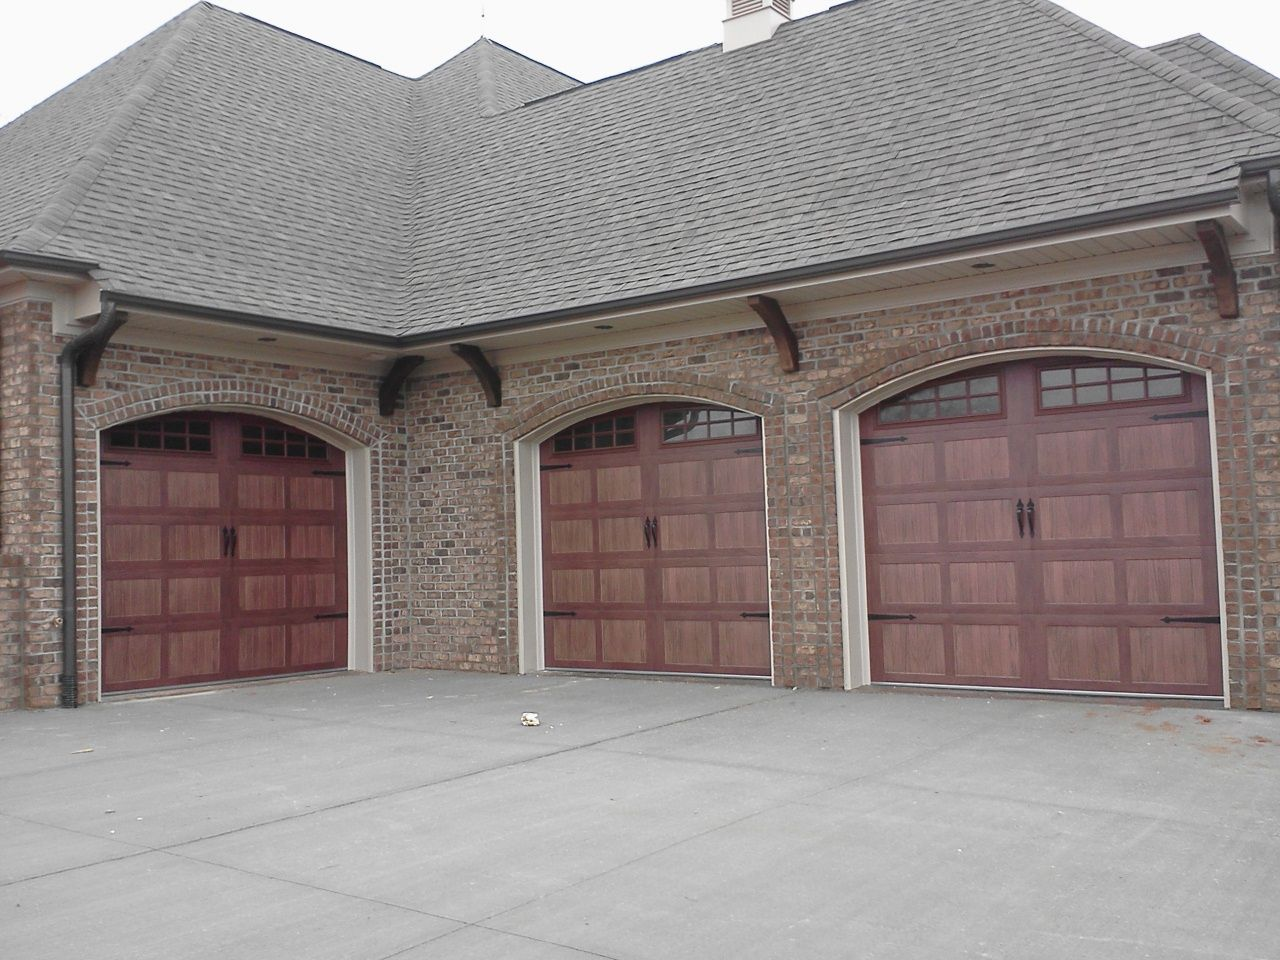 Faux Garage Door Hardware Chi Overhead Doors Model 5283 Steel Carriage House Style Garage